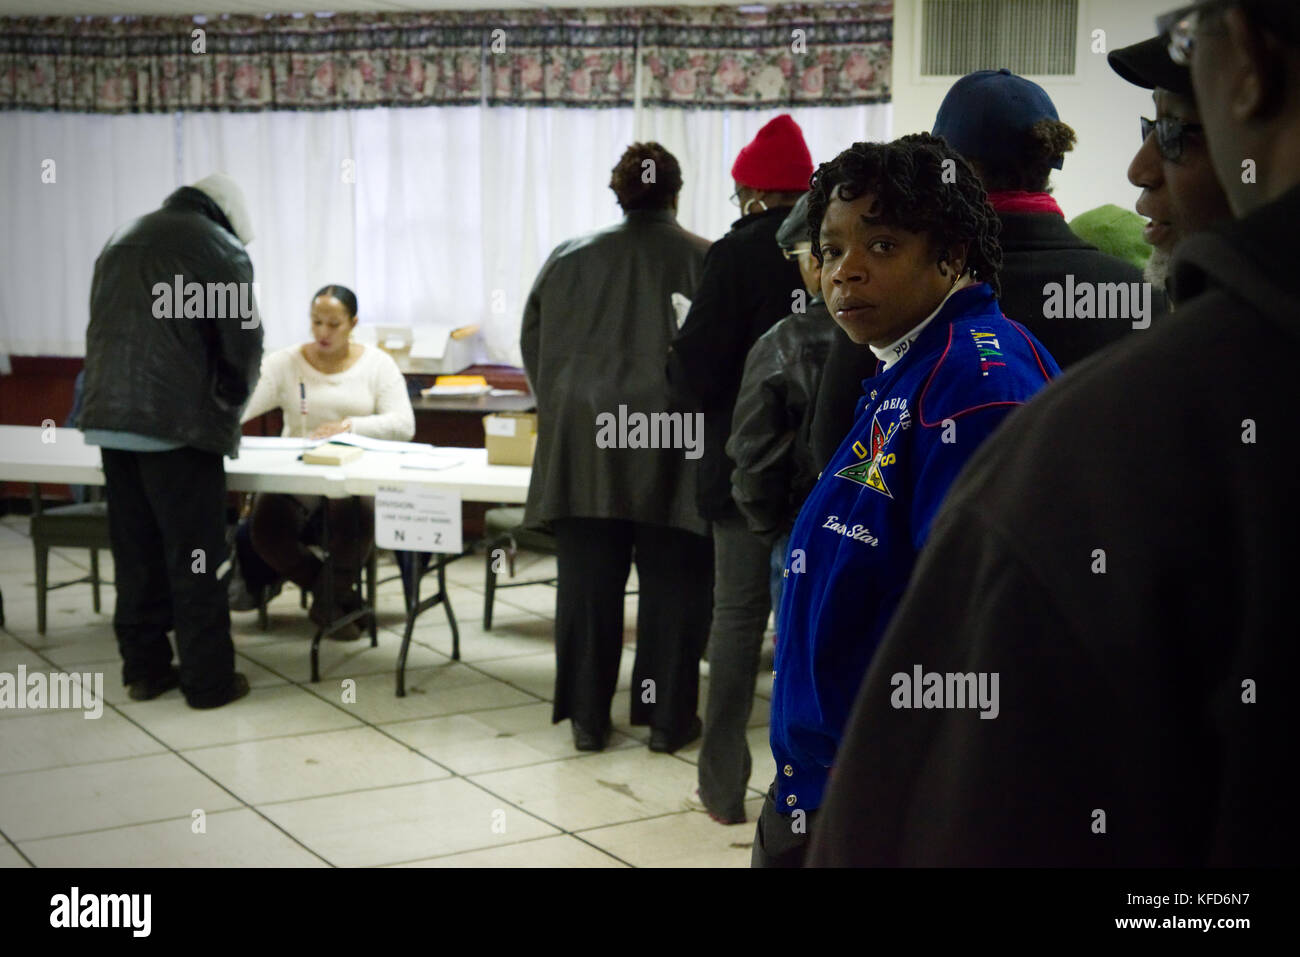 Voters wait in line to cast the ballot at a poling station in Philadelphia, PA, on Election Day. - Stock Image